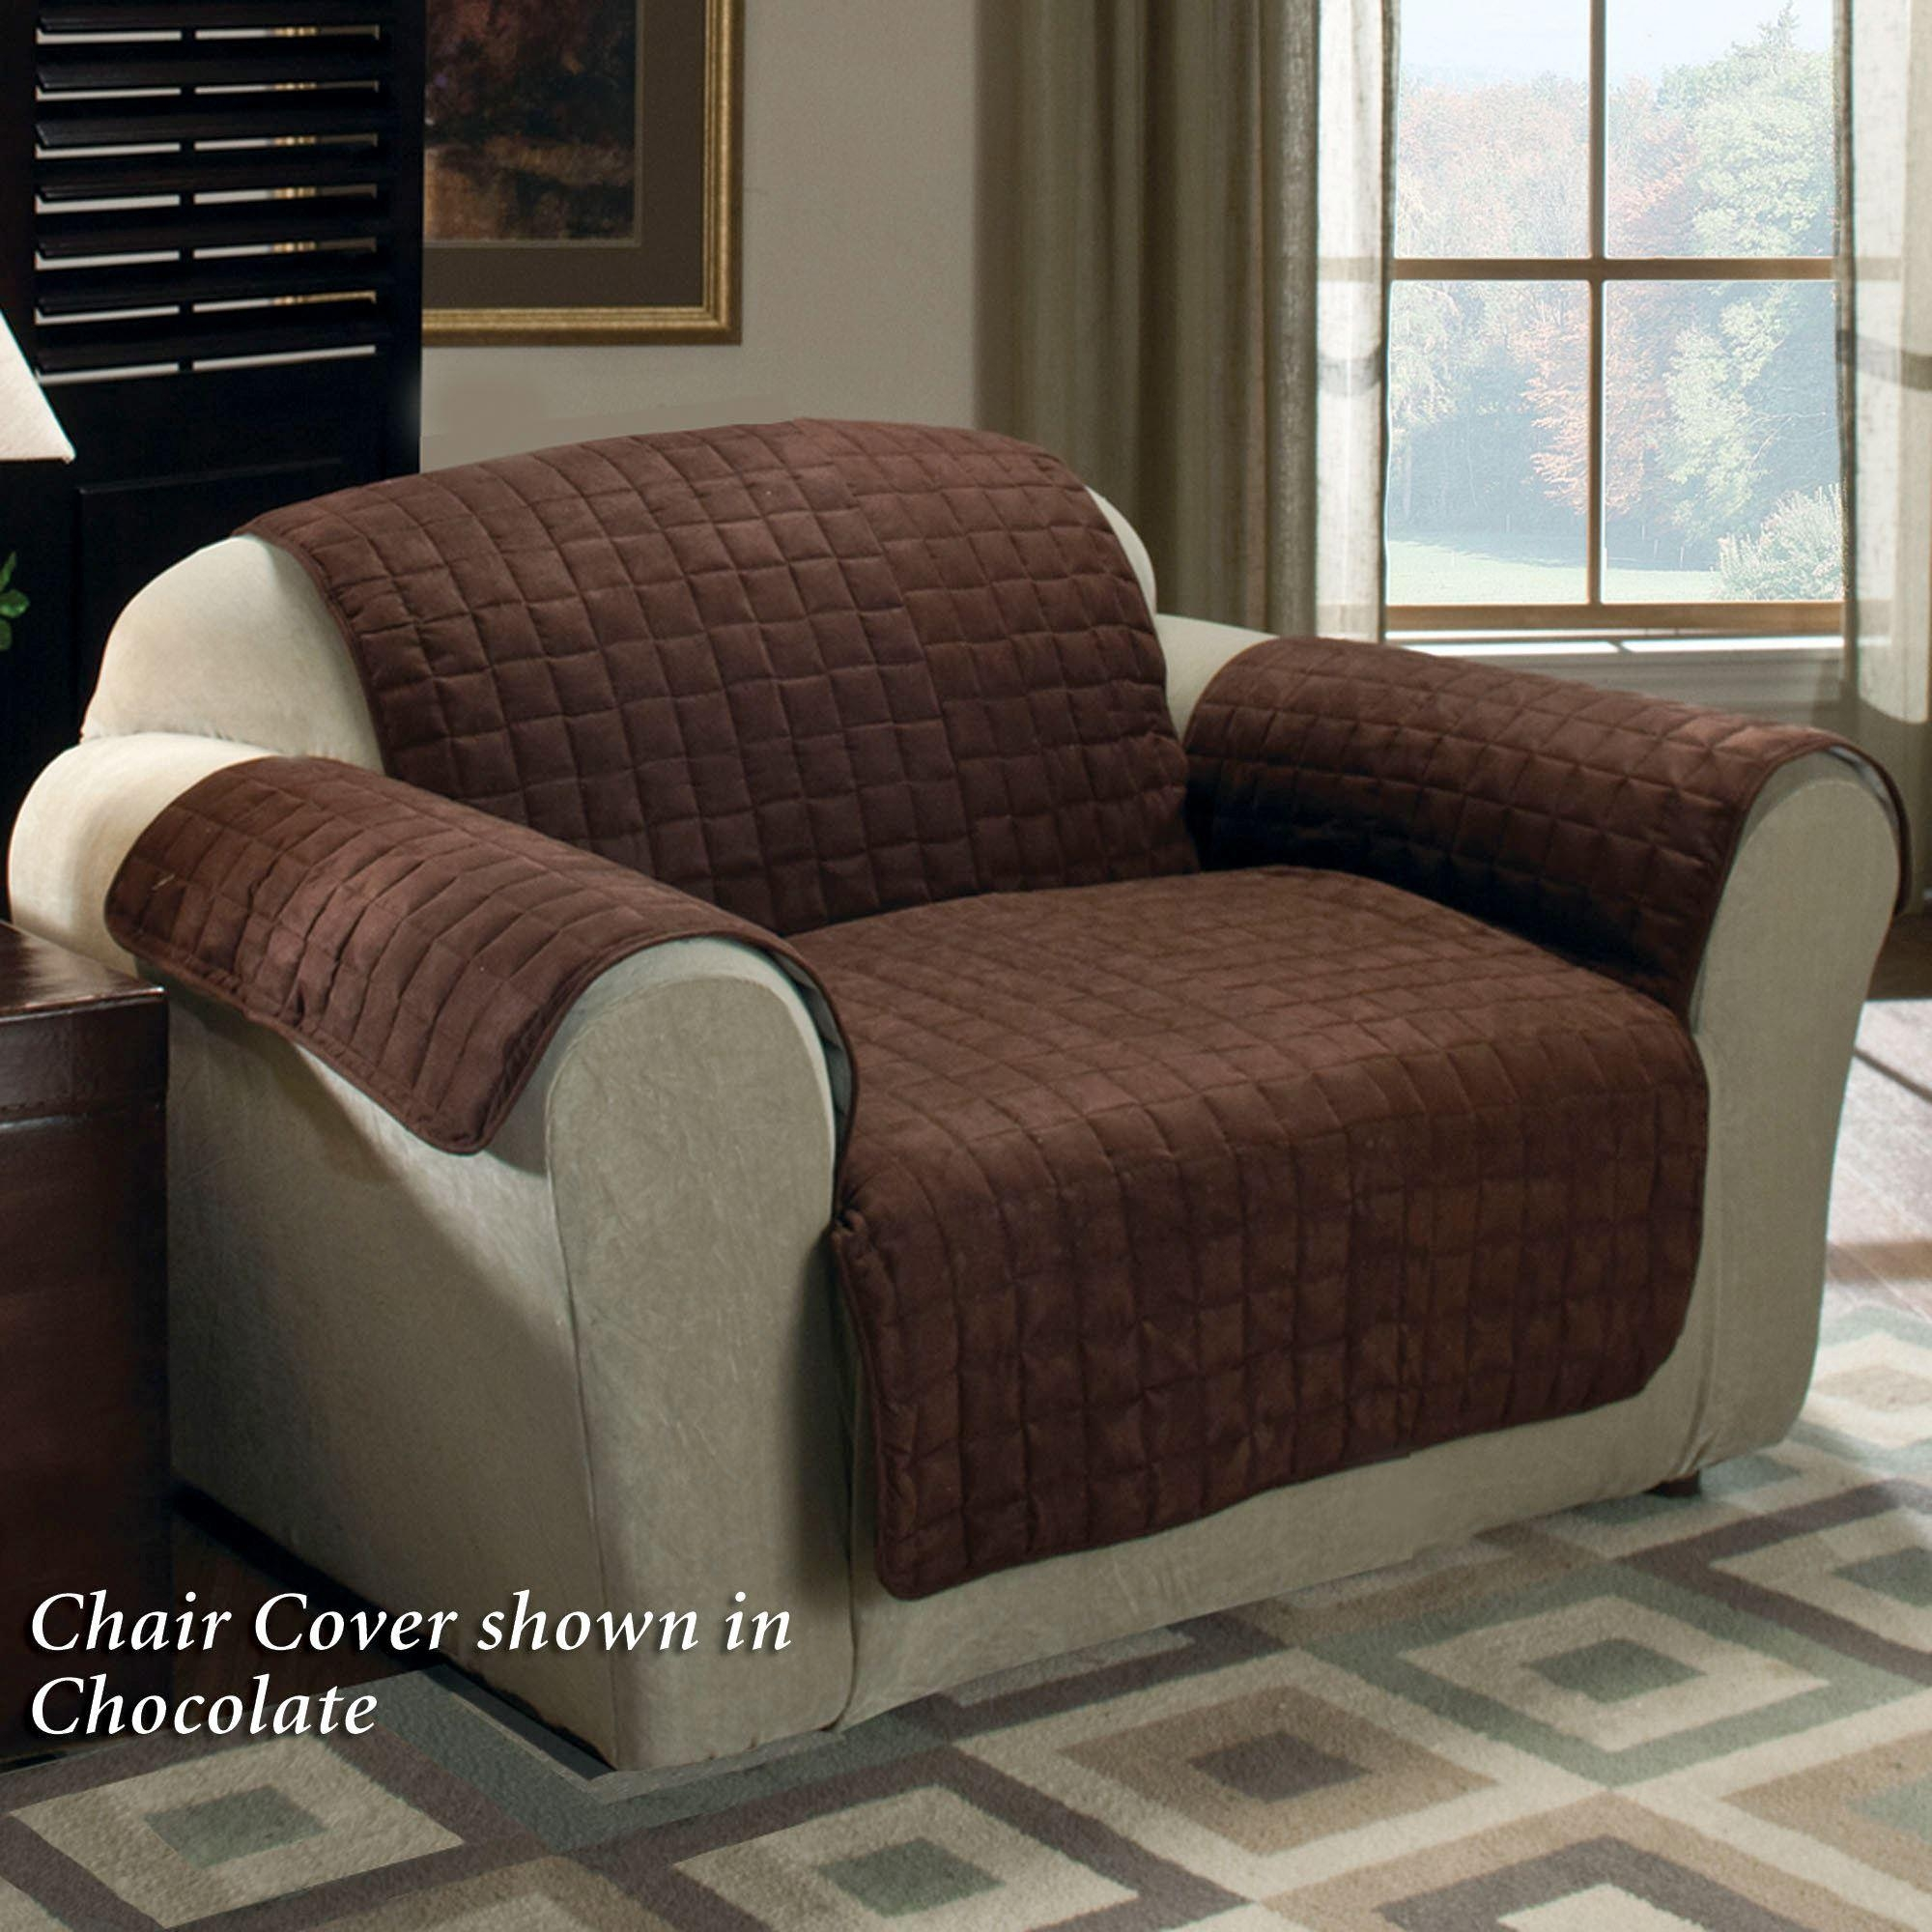 Faux Suede Pet Furniture Covers For Sofas, Loveseats, And Chairs Regarding Sofa And Loveseat Covers (View 13 of 20)